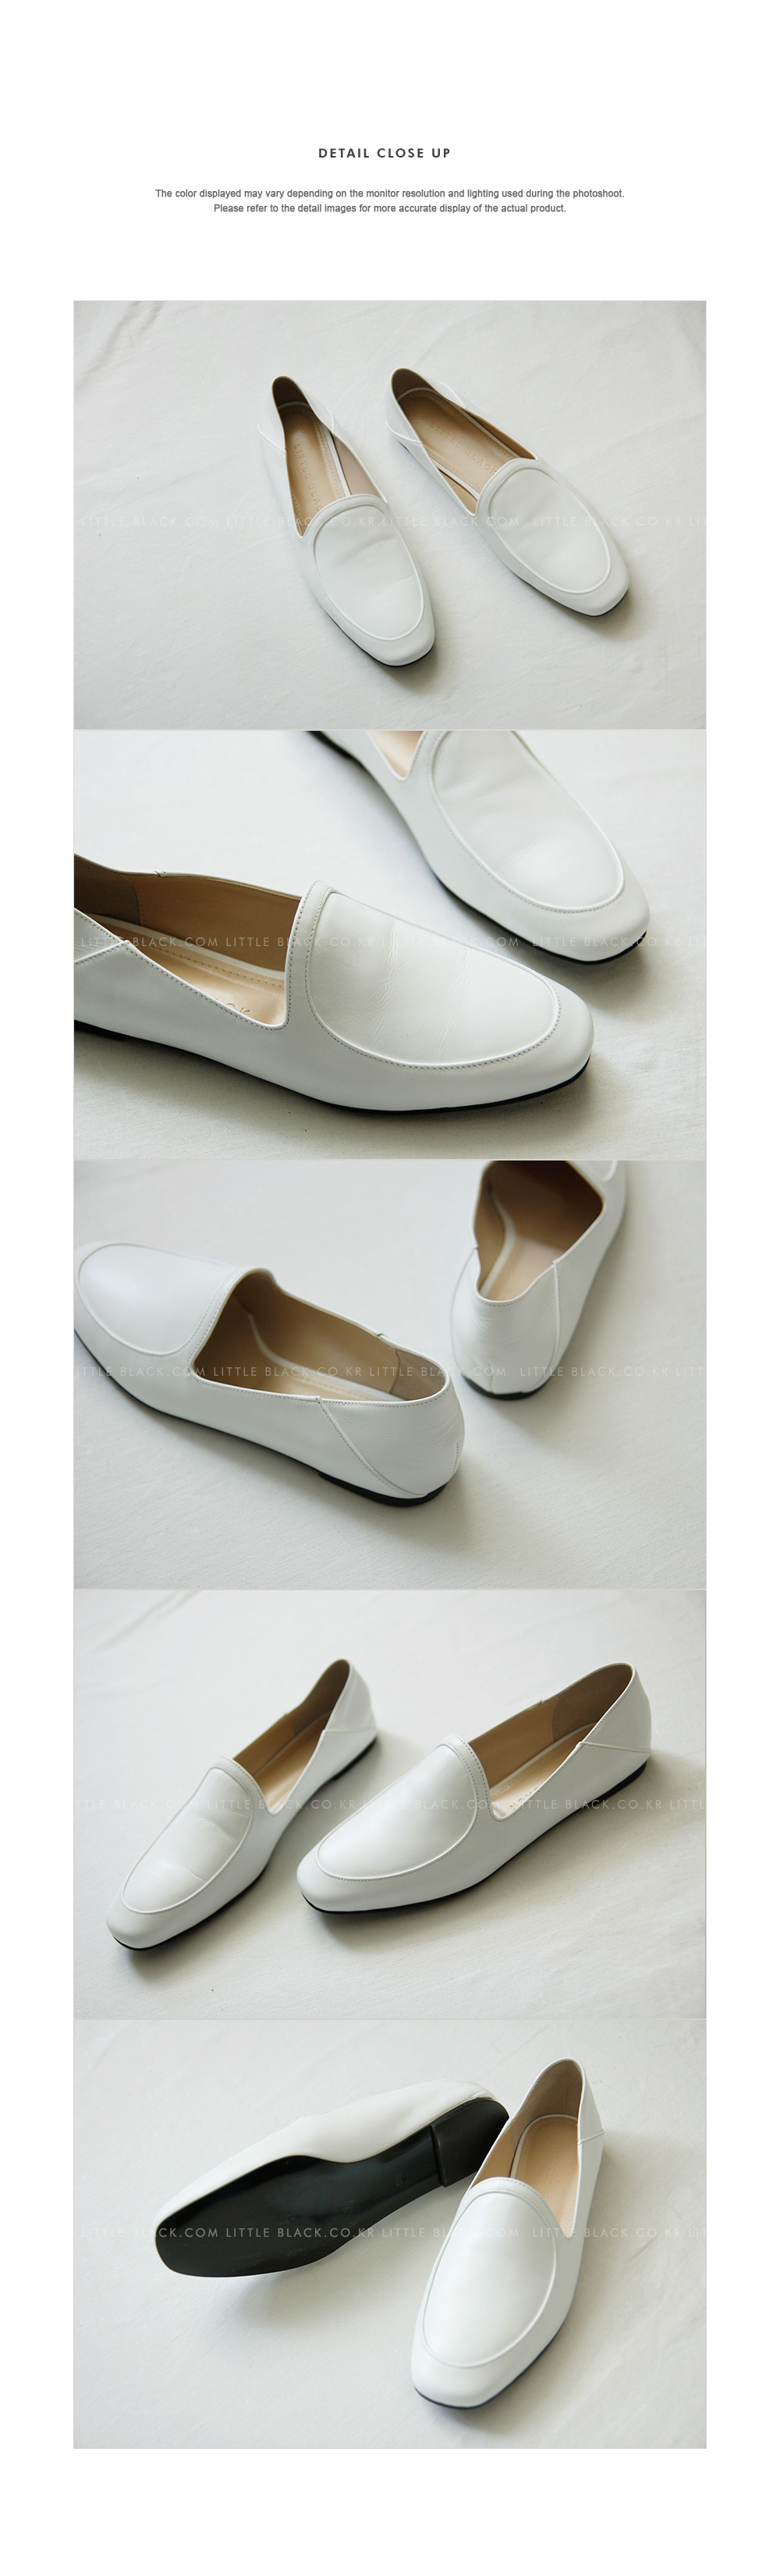 White Cowhide Loafers|